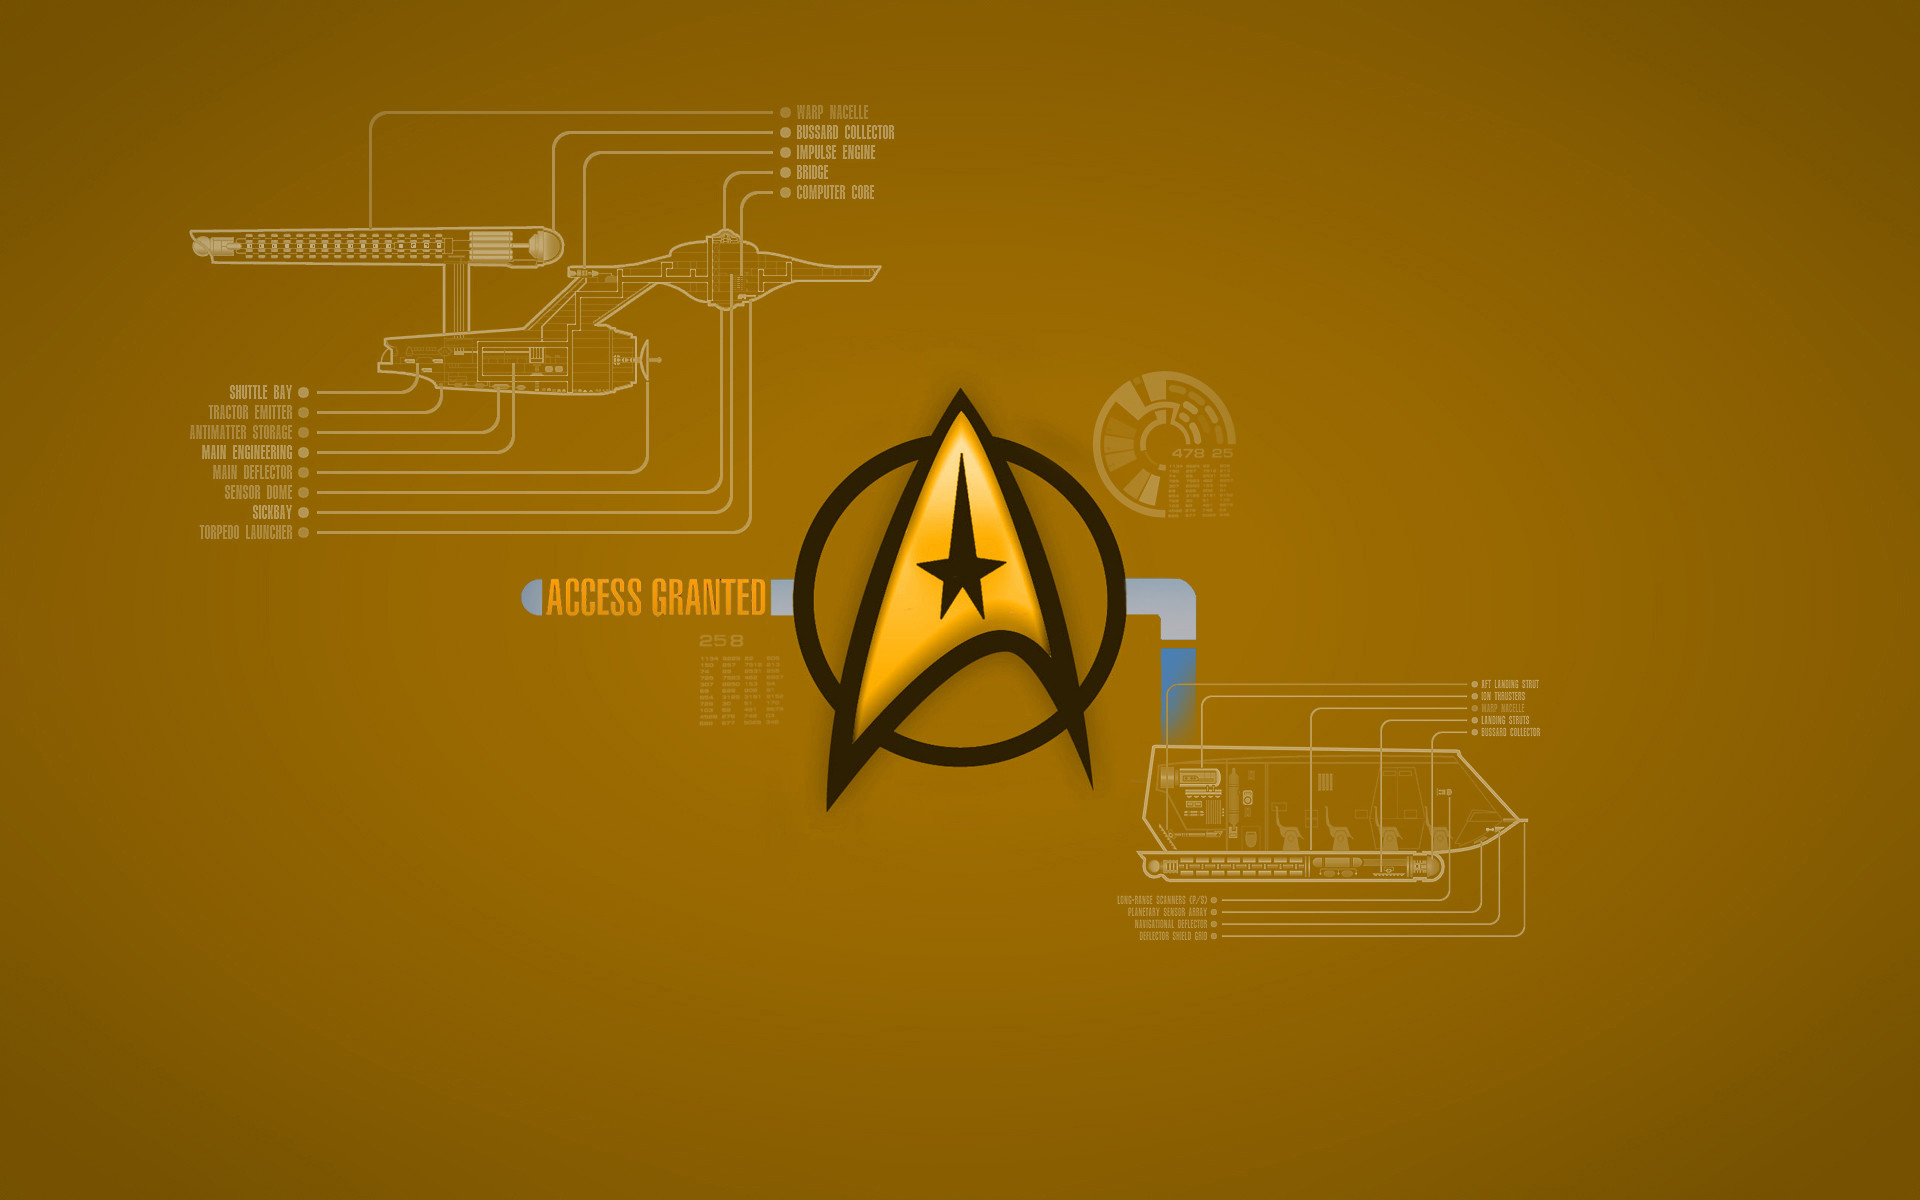 1920x1080 United Federation Of Planets Logo HD Wallpaper | 1920x1080 | ID:42846